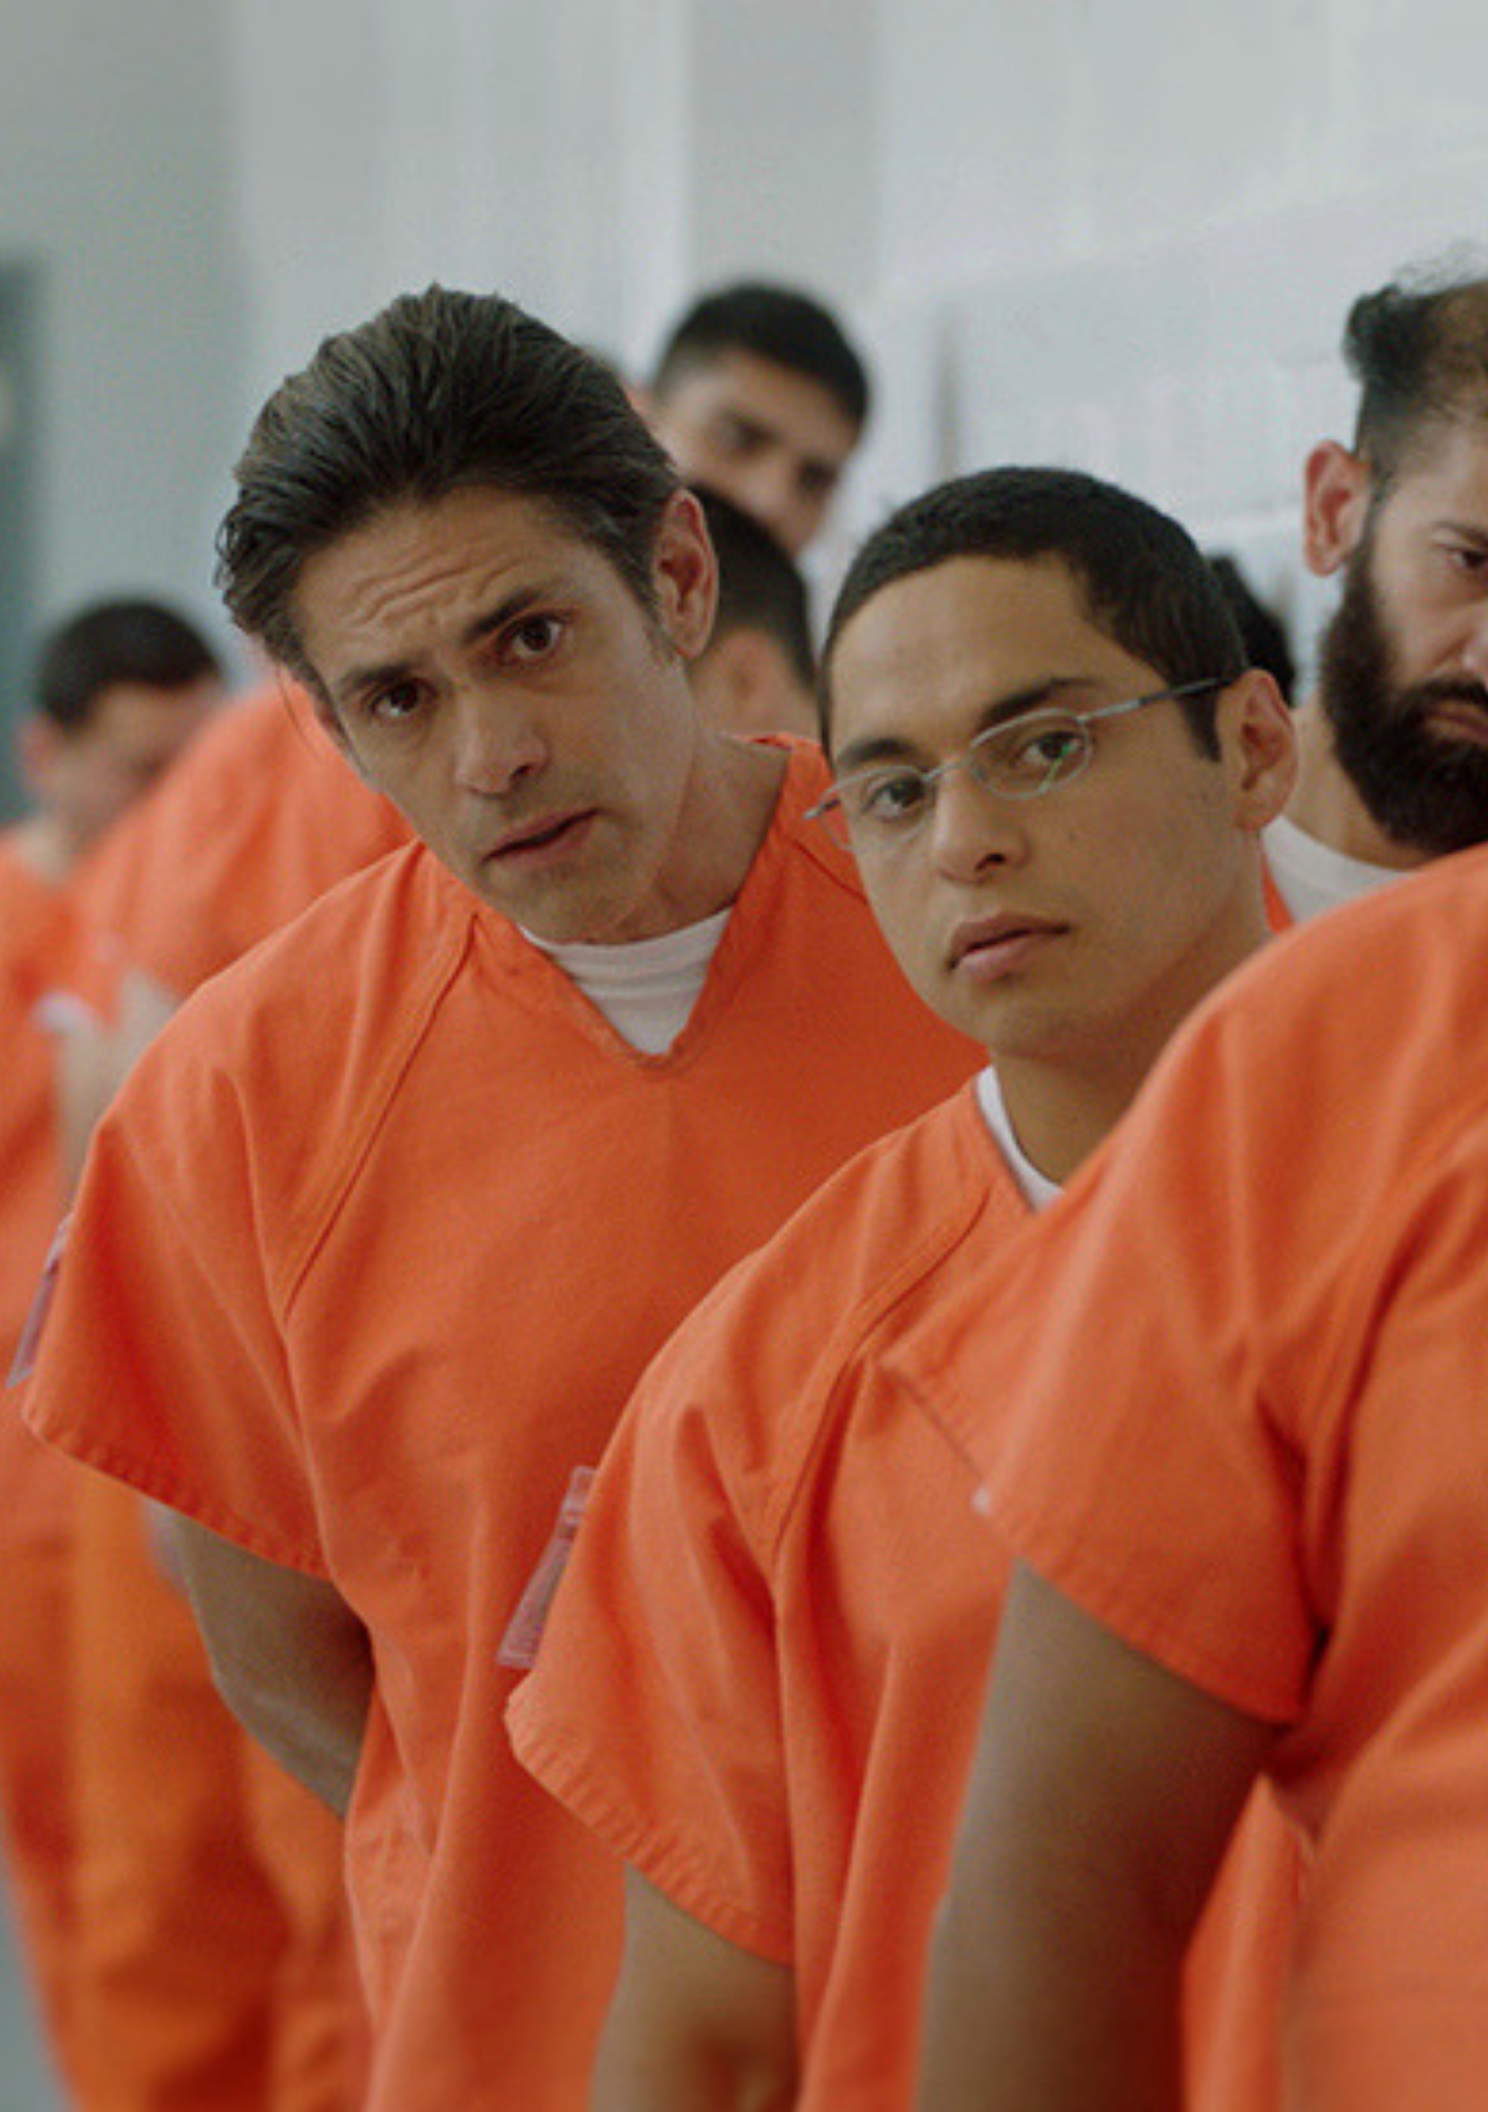 the infiltrators - OVERVIEW: A ragtag group of undocumented youth— Dreamers—deliberately get detained by border patrol in order to infiltrate a shadowy, for-profit detention center. Charged with the crackling suspense of a thriller, this true life tale of courage and resistance exposes the injustices and inhumanity of America's deeply broken deportation system.FILMMAKERS: A film by Cristina Ibarra and Alex Rivera. Ibarra's credits include Las Marthas; P.O.V.'s The Last Conquistador; and Dirty Laundry: A Homemade Telenovela. Rivera's credits include Sleep Dealer, which won awards at Sundance and Berlin.WINNER: Sundance Film FestivalPRESS: The New Yorker, The Guardian, The Hollywood Reporter, Indiewire, The Wrap